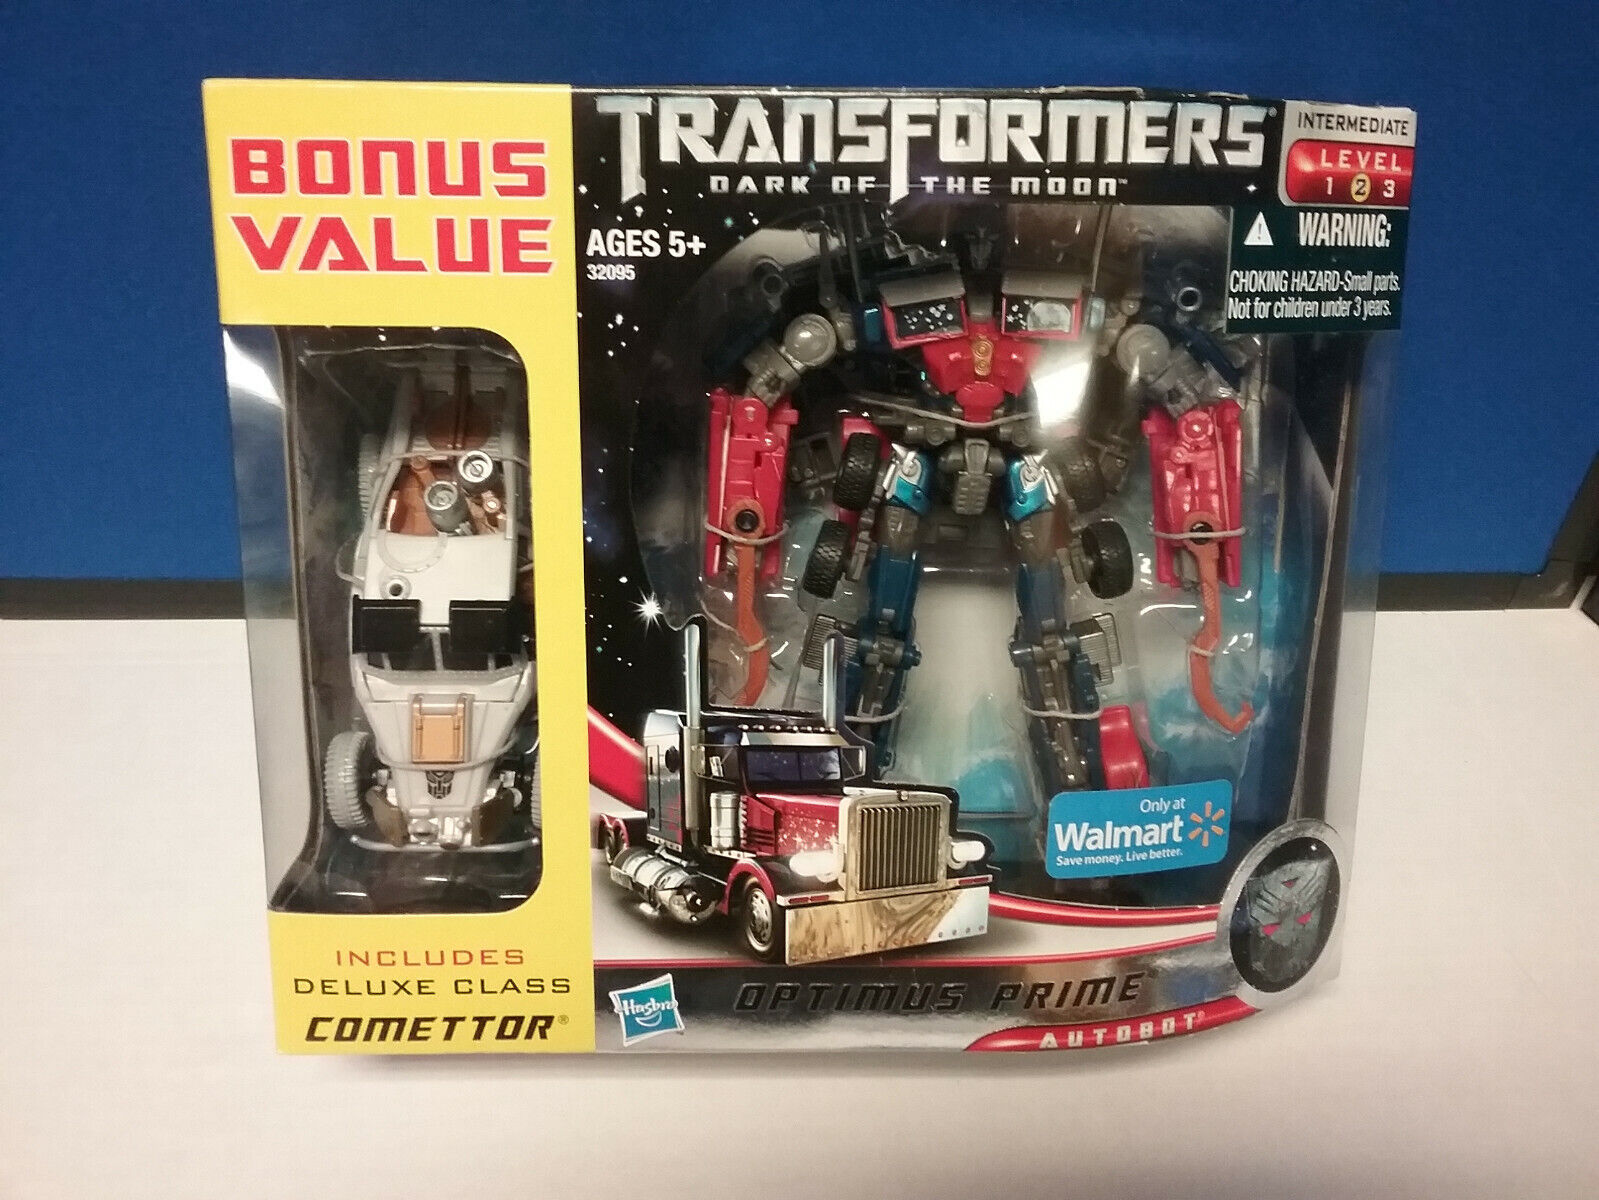 Transformers DOTM Optimus Prime Comettor Comettor Walmart EX NEW FREE SHIP US